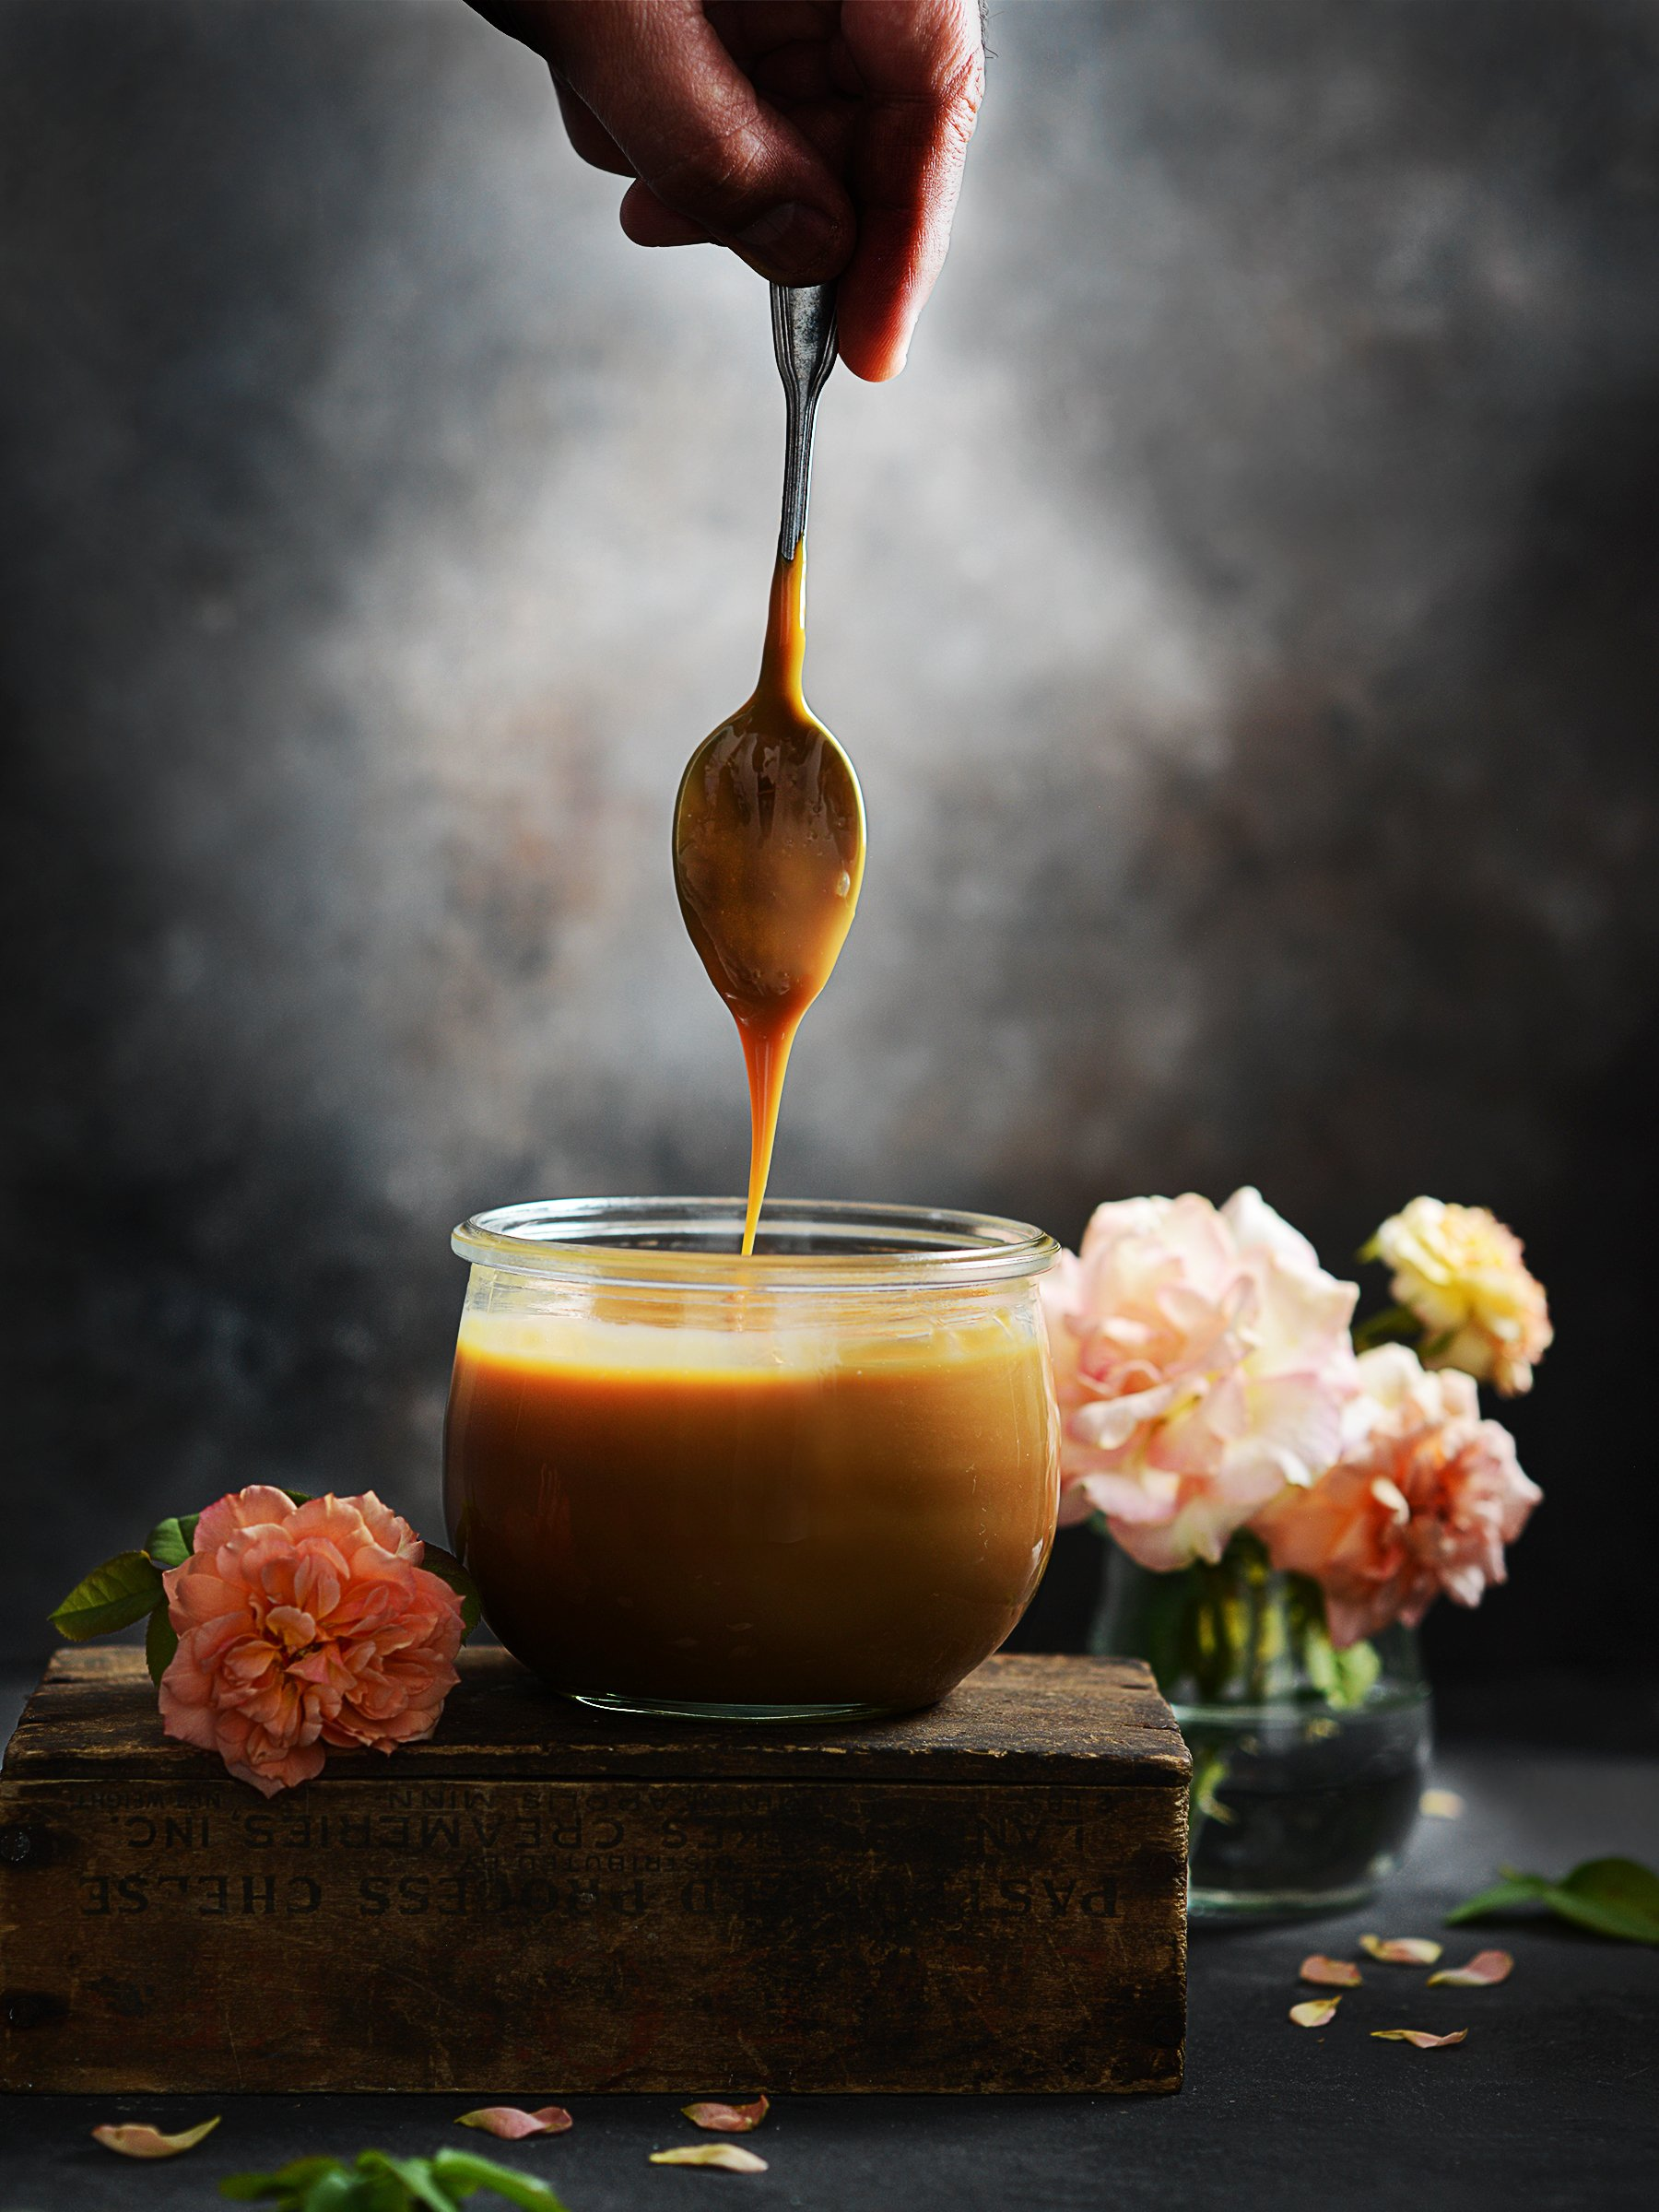 Moody food photography. A glass with Dulce De Leche with a spoon on top and dripping dulce de leche.